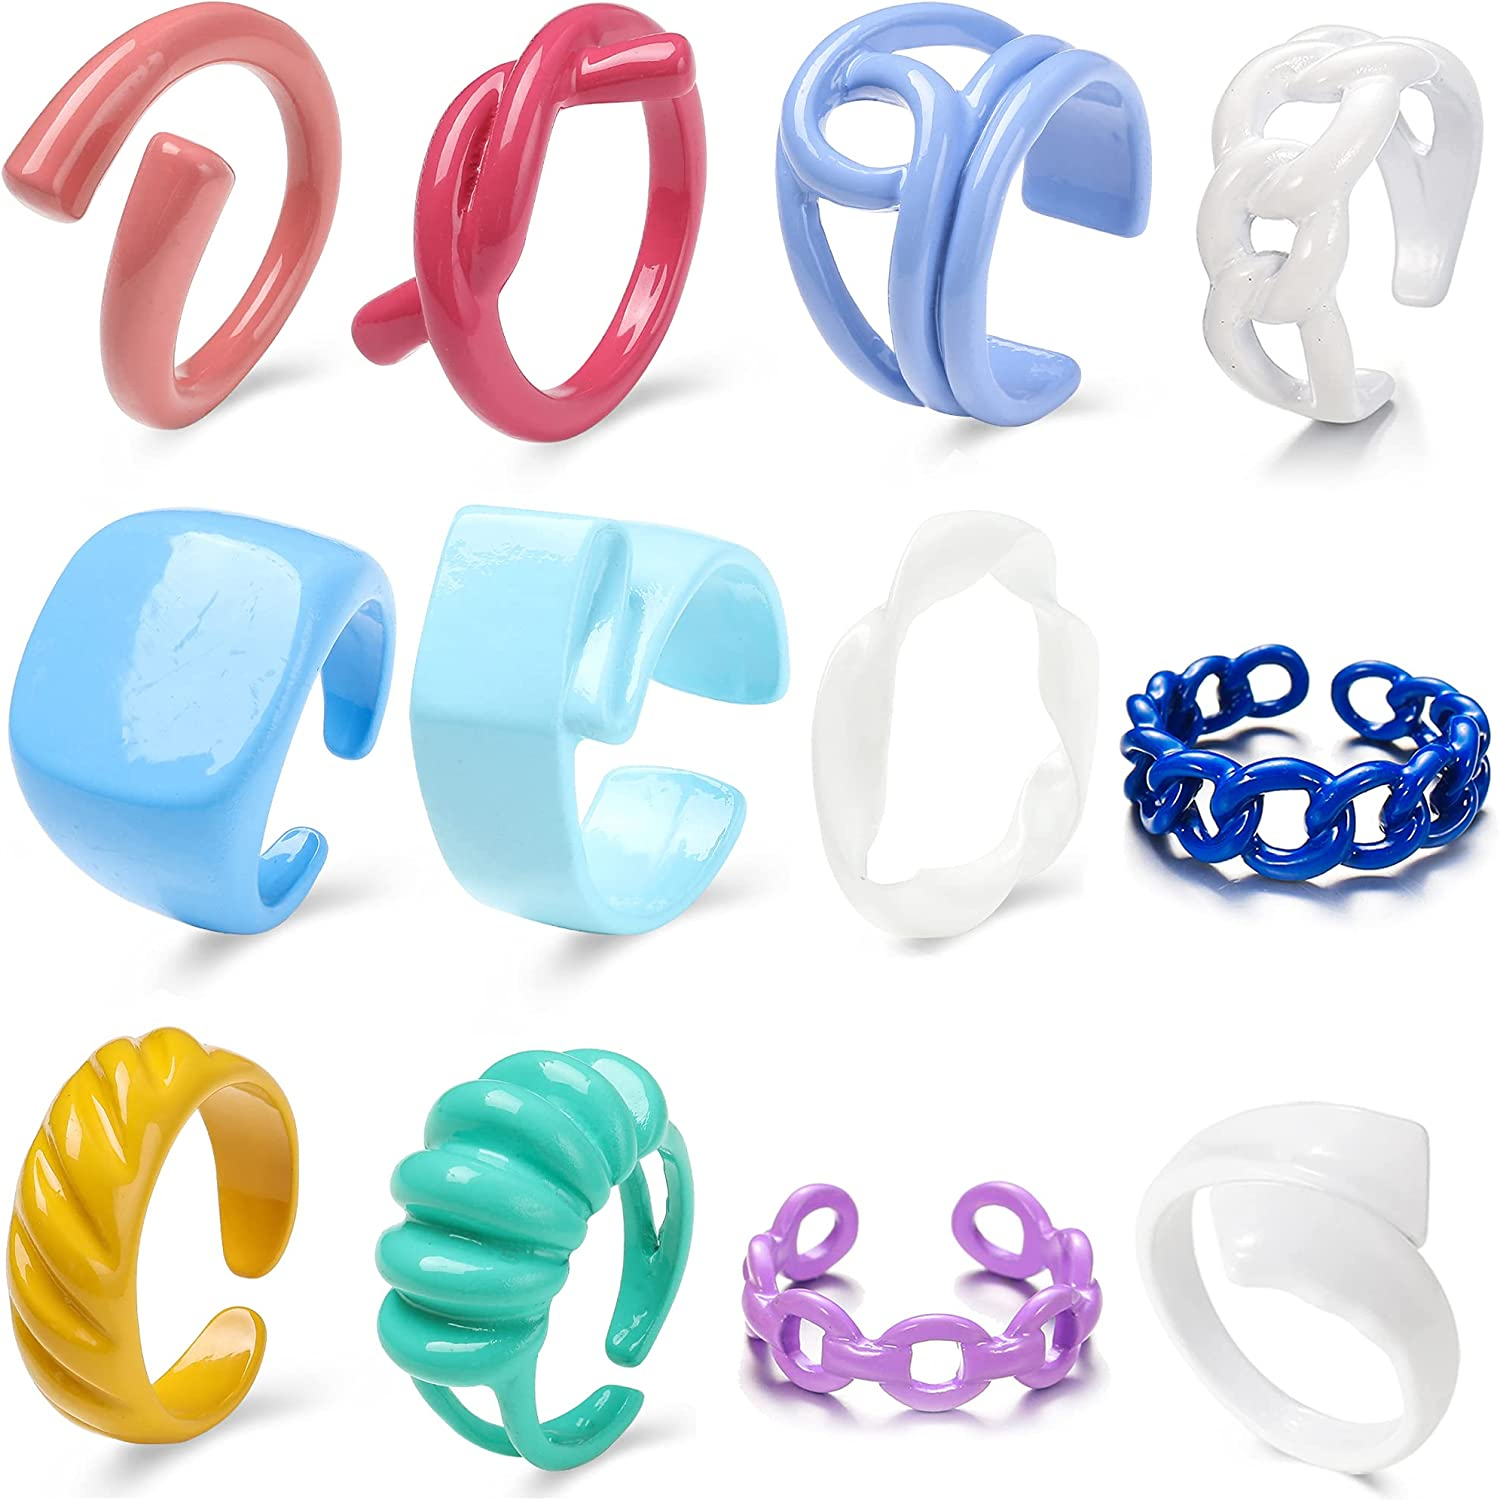 Chunky Rings Colorful, Trendy Resin Acrylic Open Stackable Finger Knuckle Y2K Rings for Women